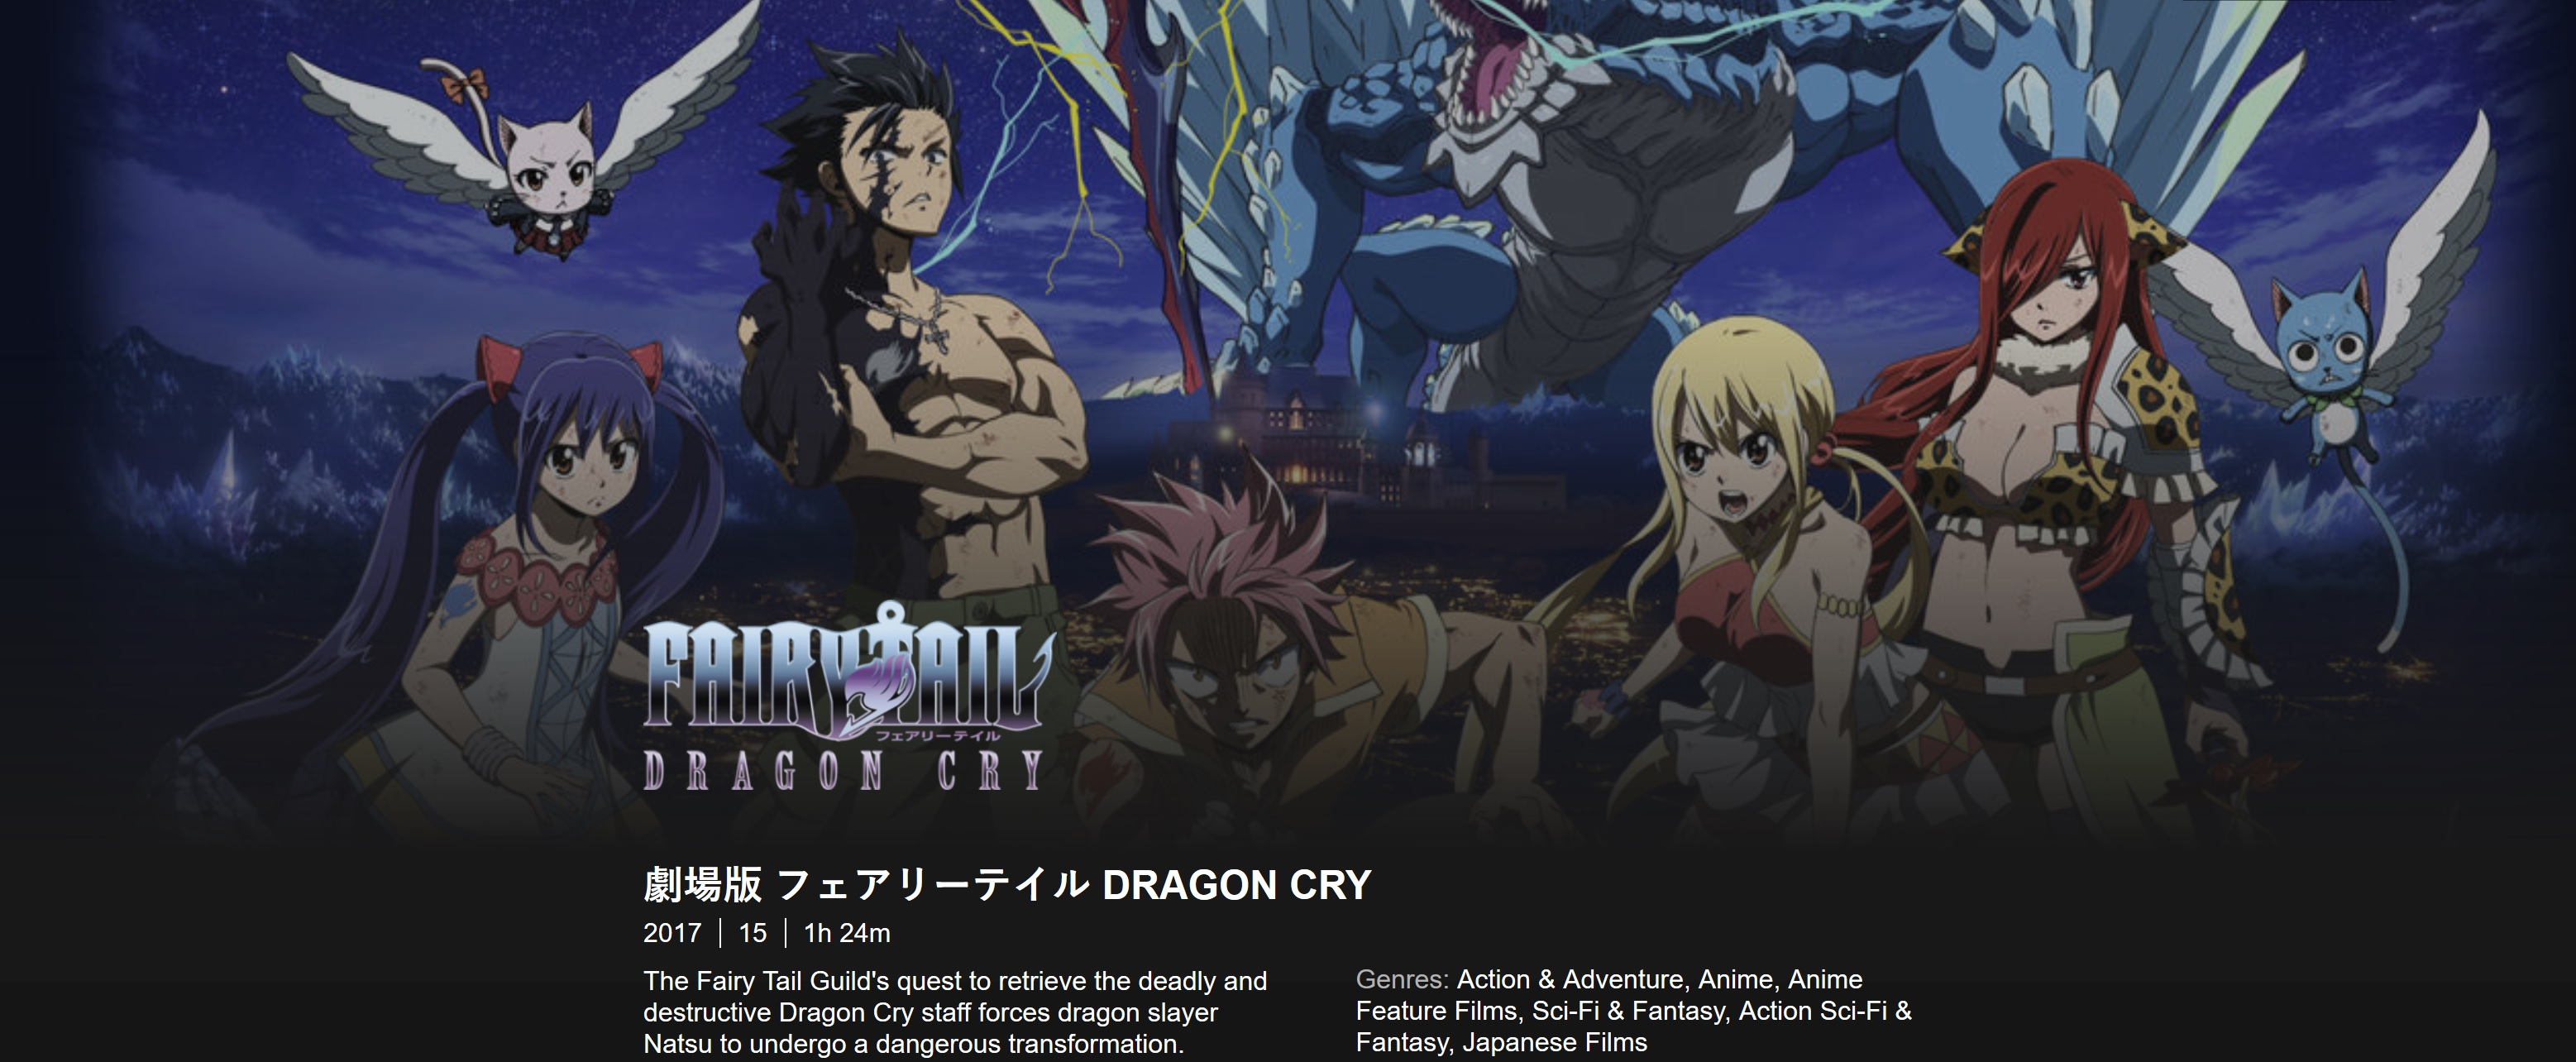 how to watch fairy tail dragon cry